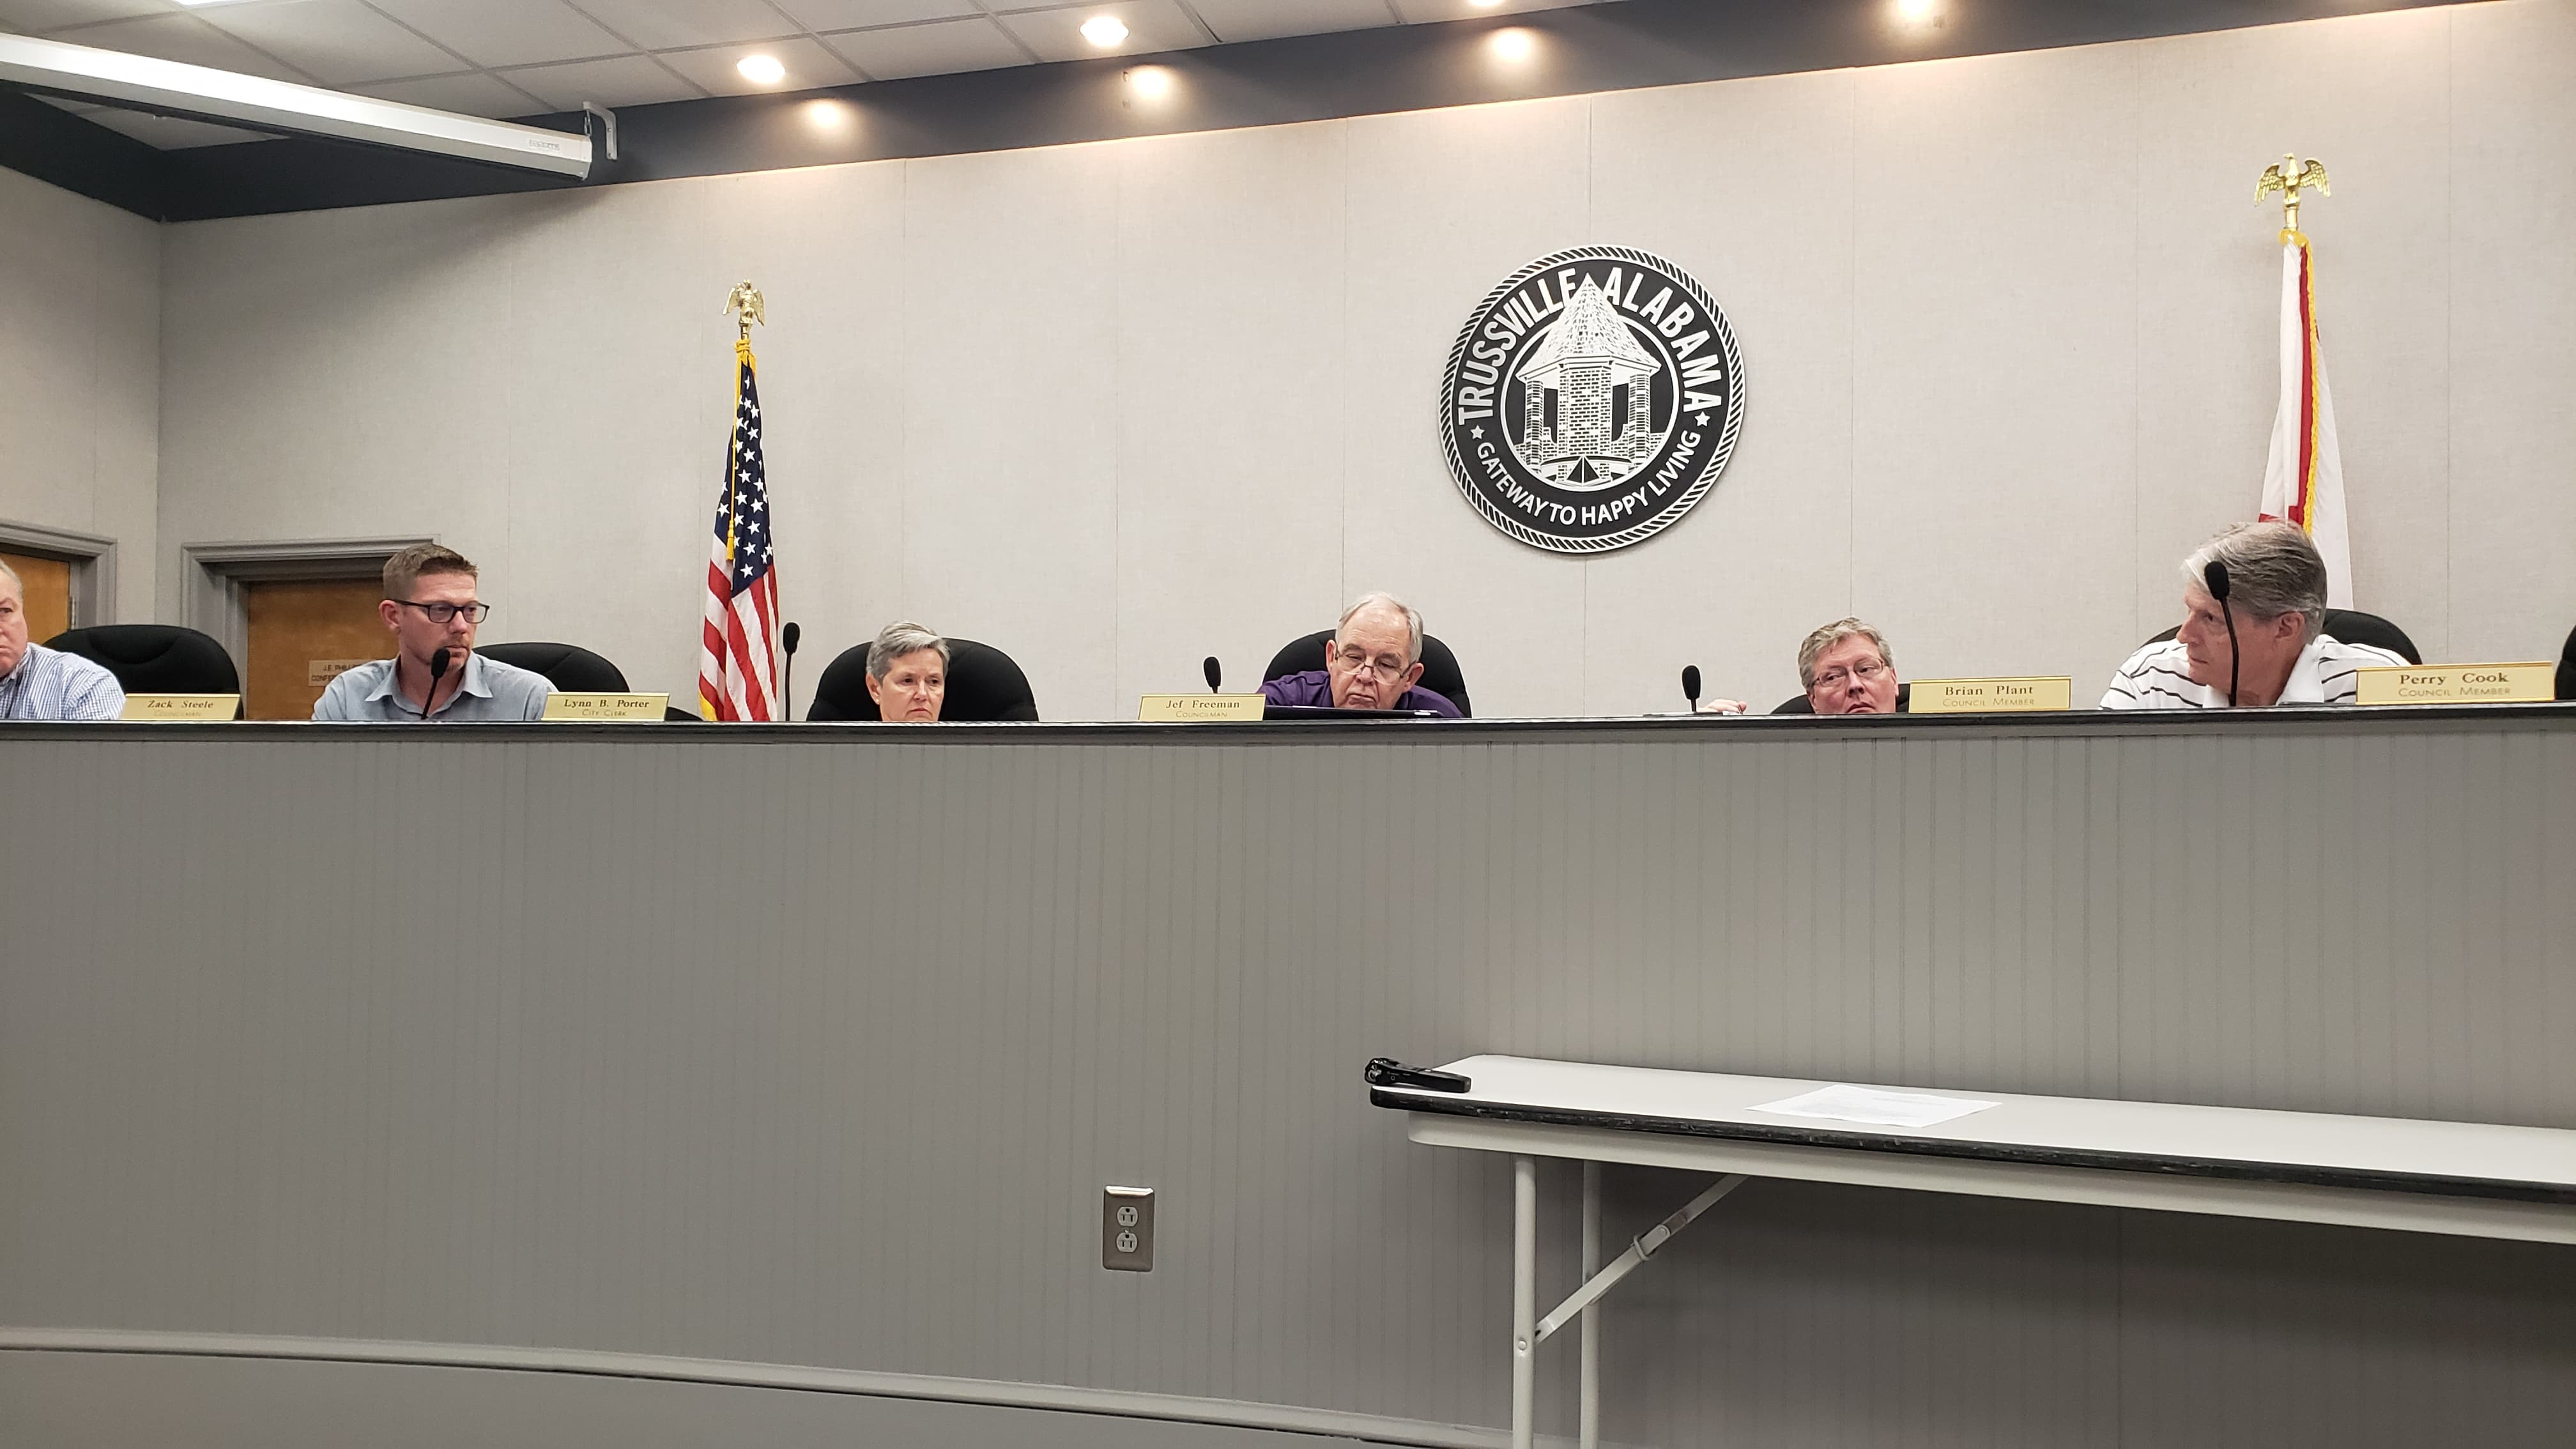 Trussville councilman apologizes for 'insulting or insinuating' during rezoning discussion